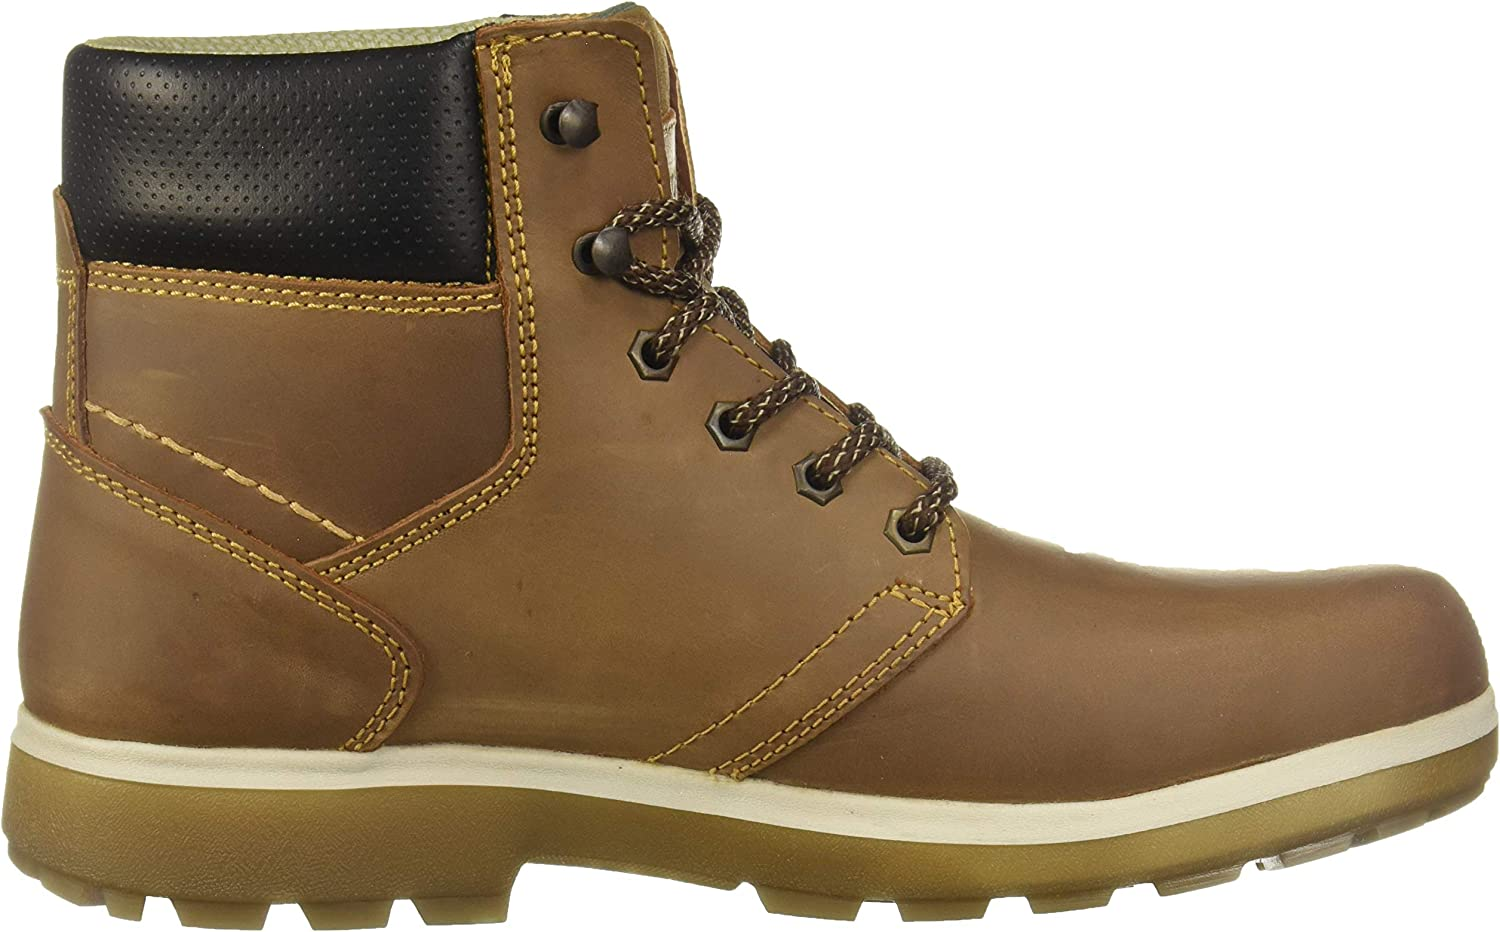 Details about  /NIB DISCOVERY EXPEDITION MEN/'S 9.5 SAREK 2050 CAMEL BOOTS US FAST SHIPPING